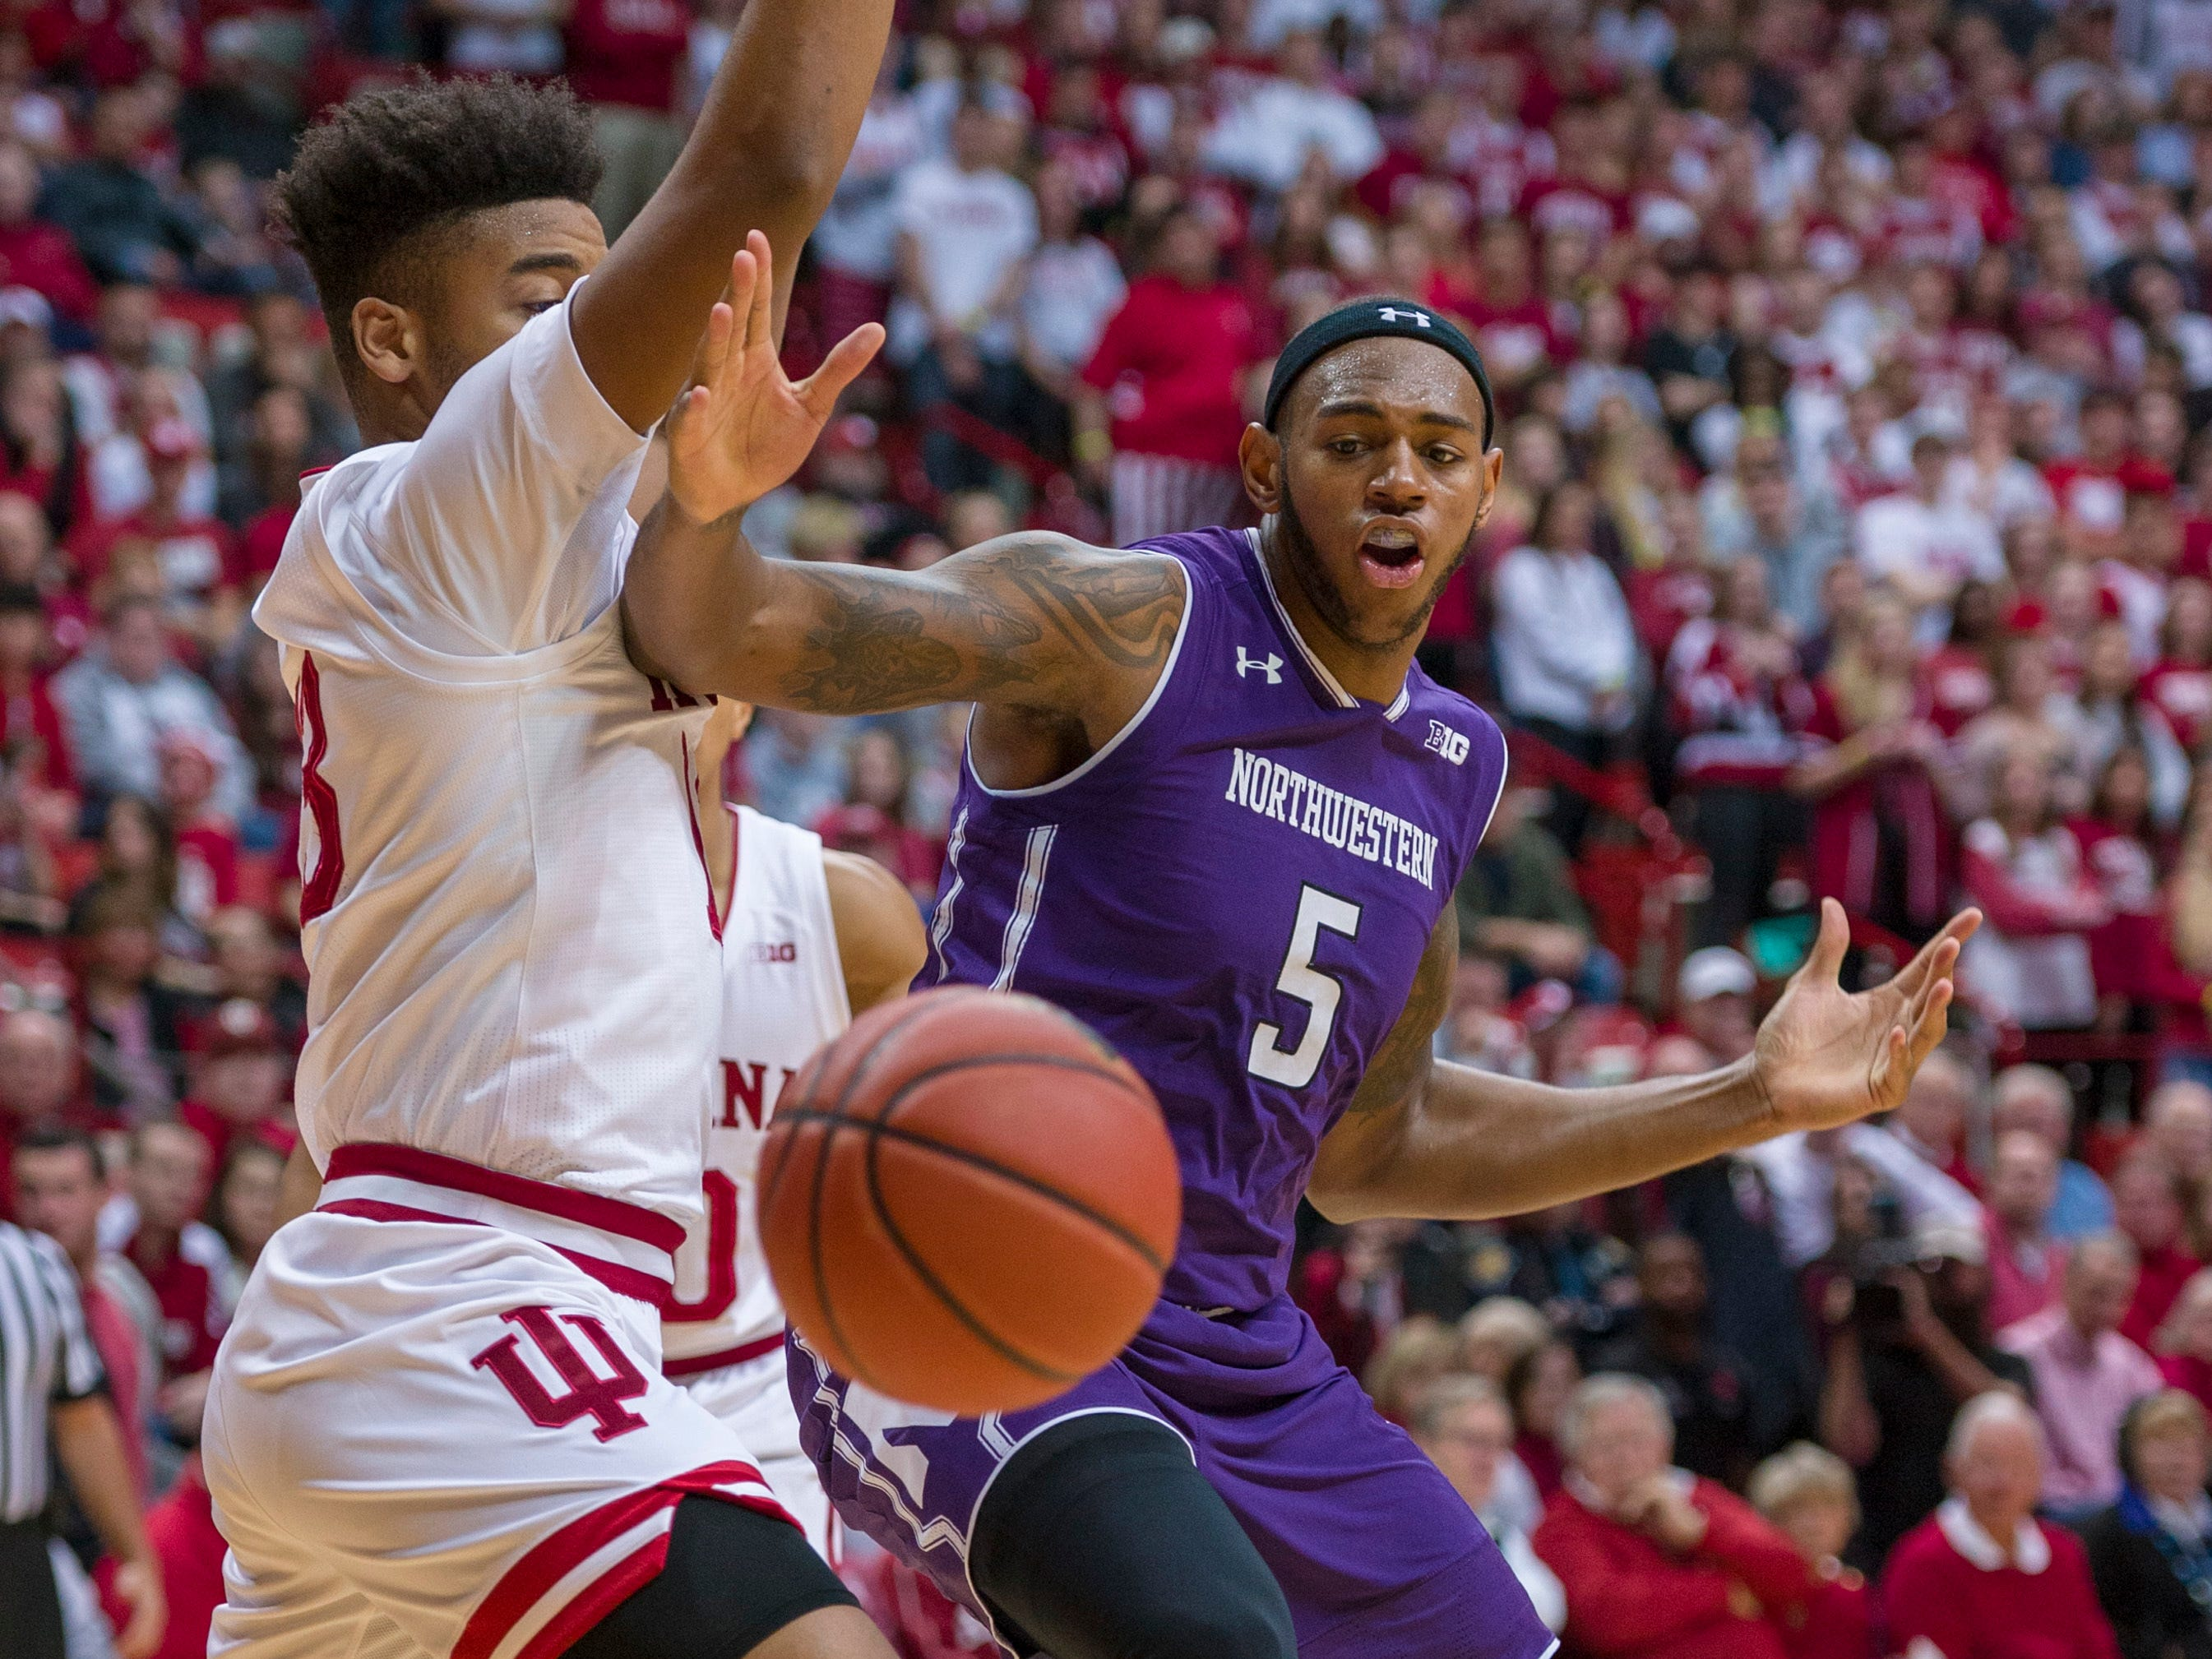 Northwestern center Dererk Pardon (5) loses the ball en route to the basket as he's defended by Indiana forward Juwan Morgan (13) during the first half of an NCAA college basketball game Saturday, Dec. 1, 2018, in Bloomington, Ind.